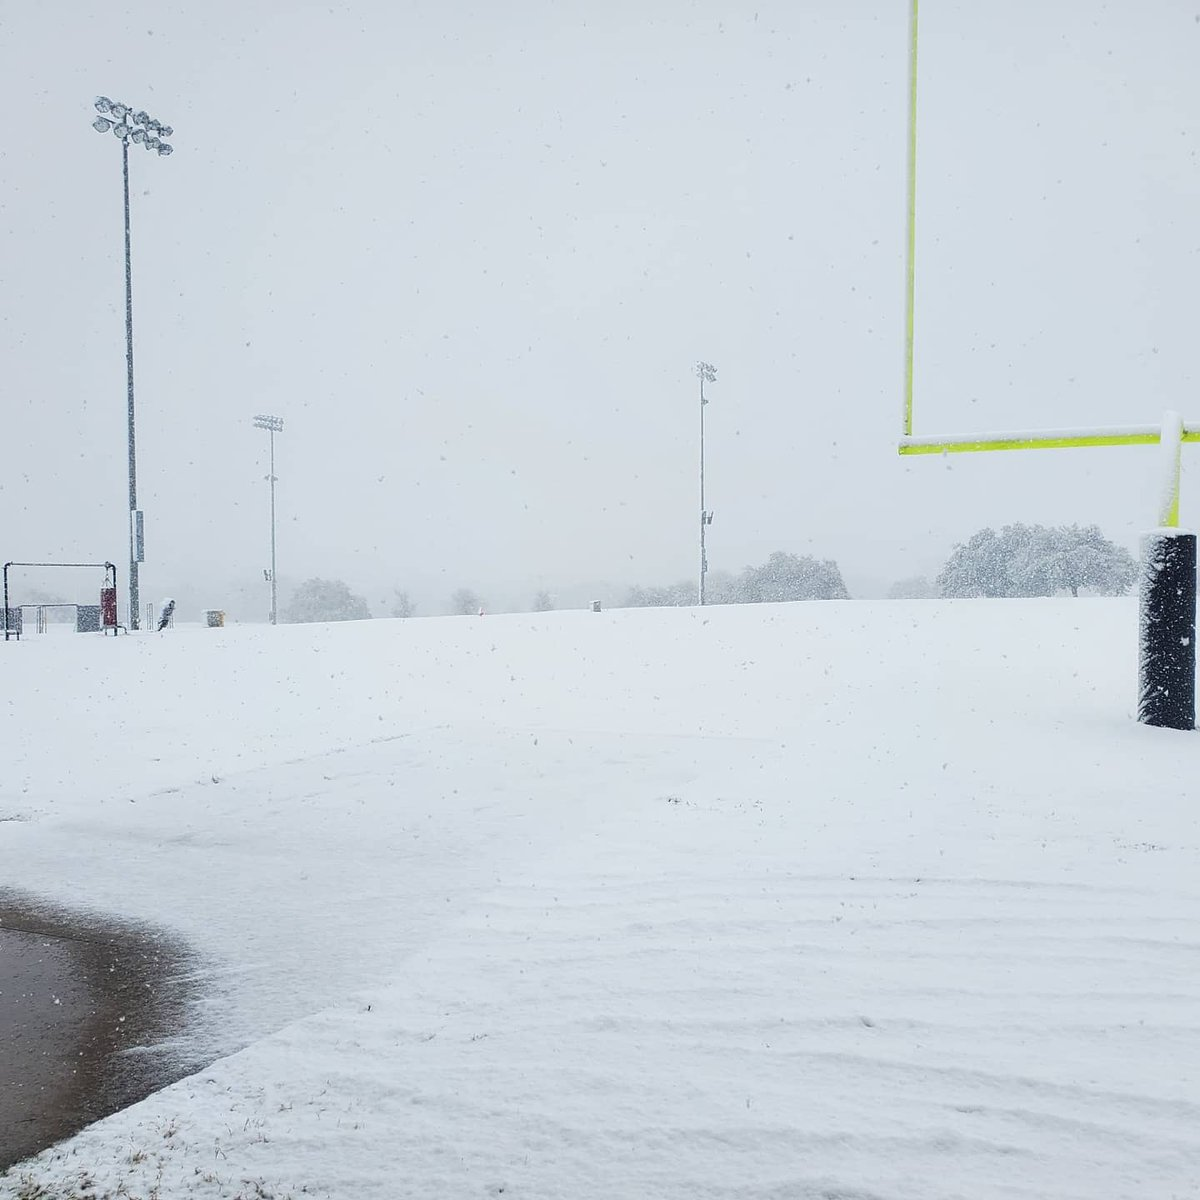 Yes, we still have practice.